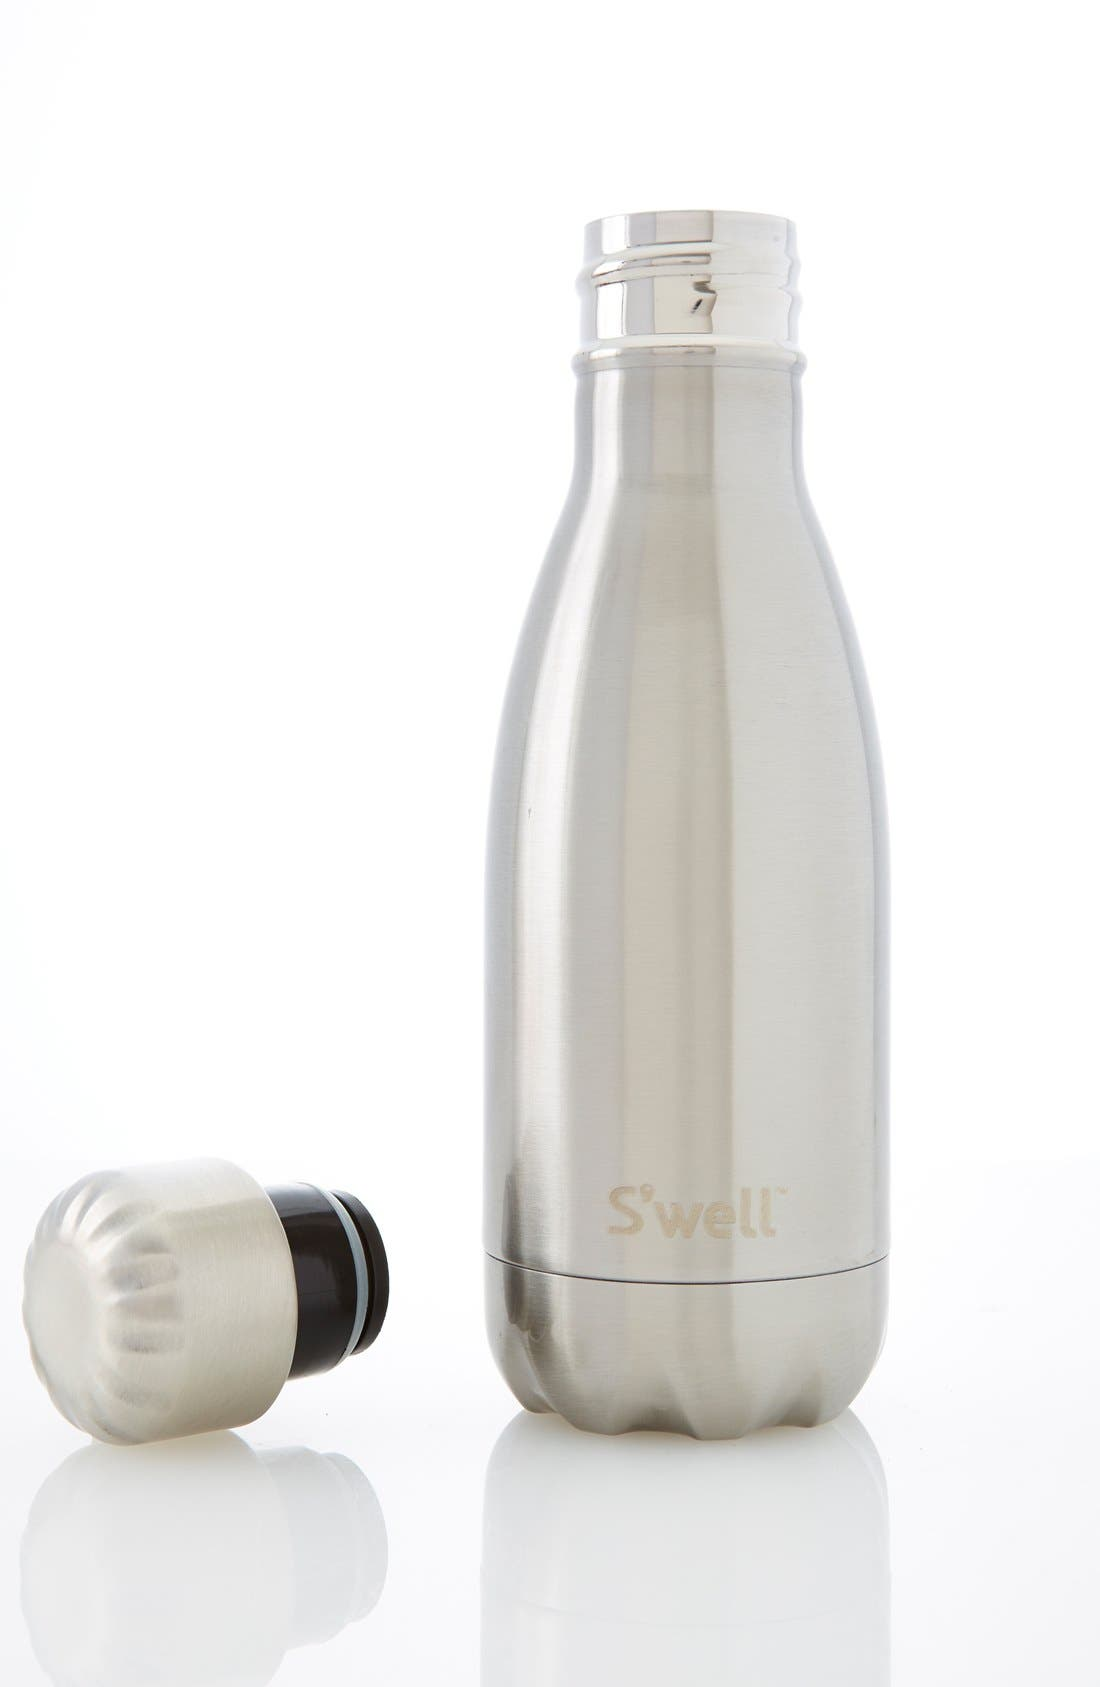 S'well Silver Lining stainless steel water bottle